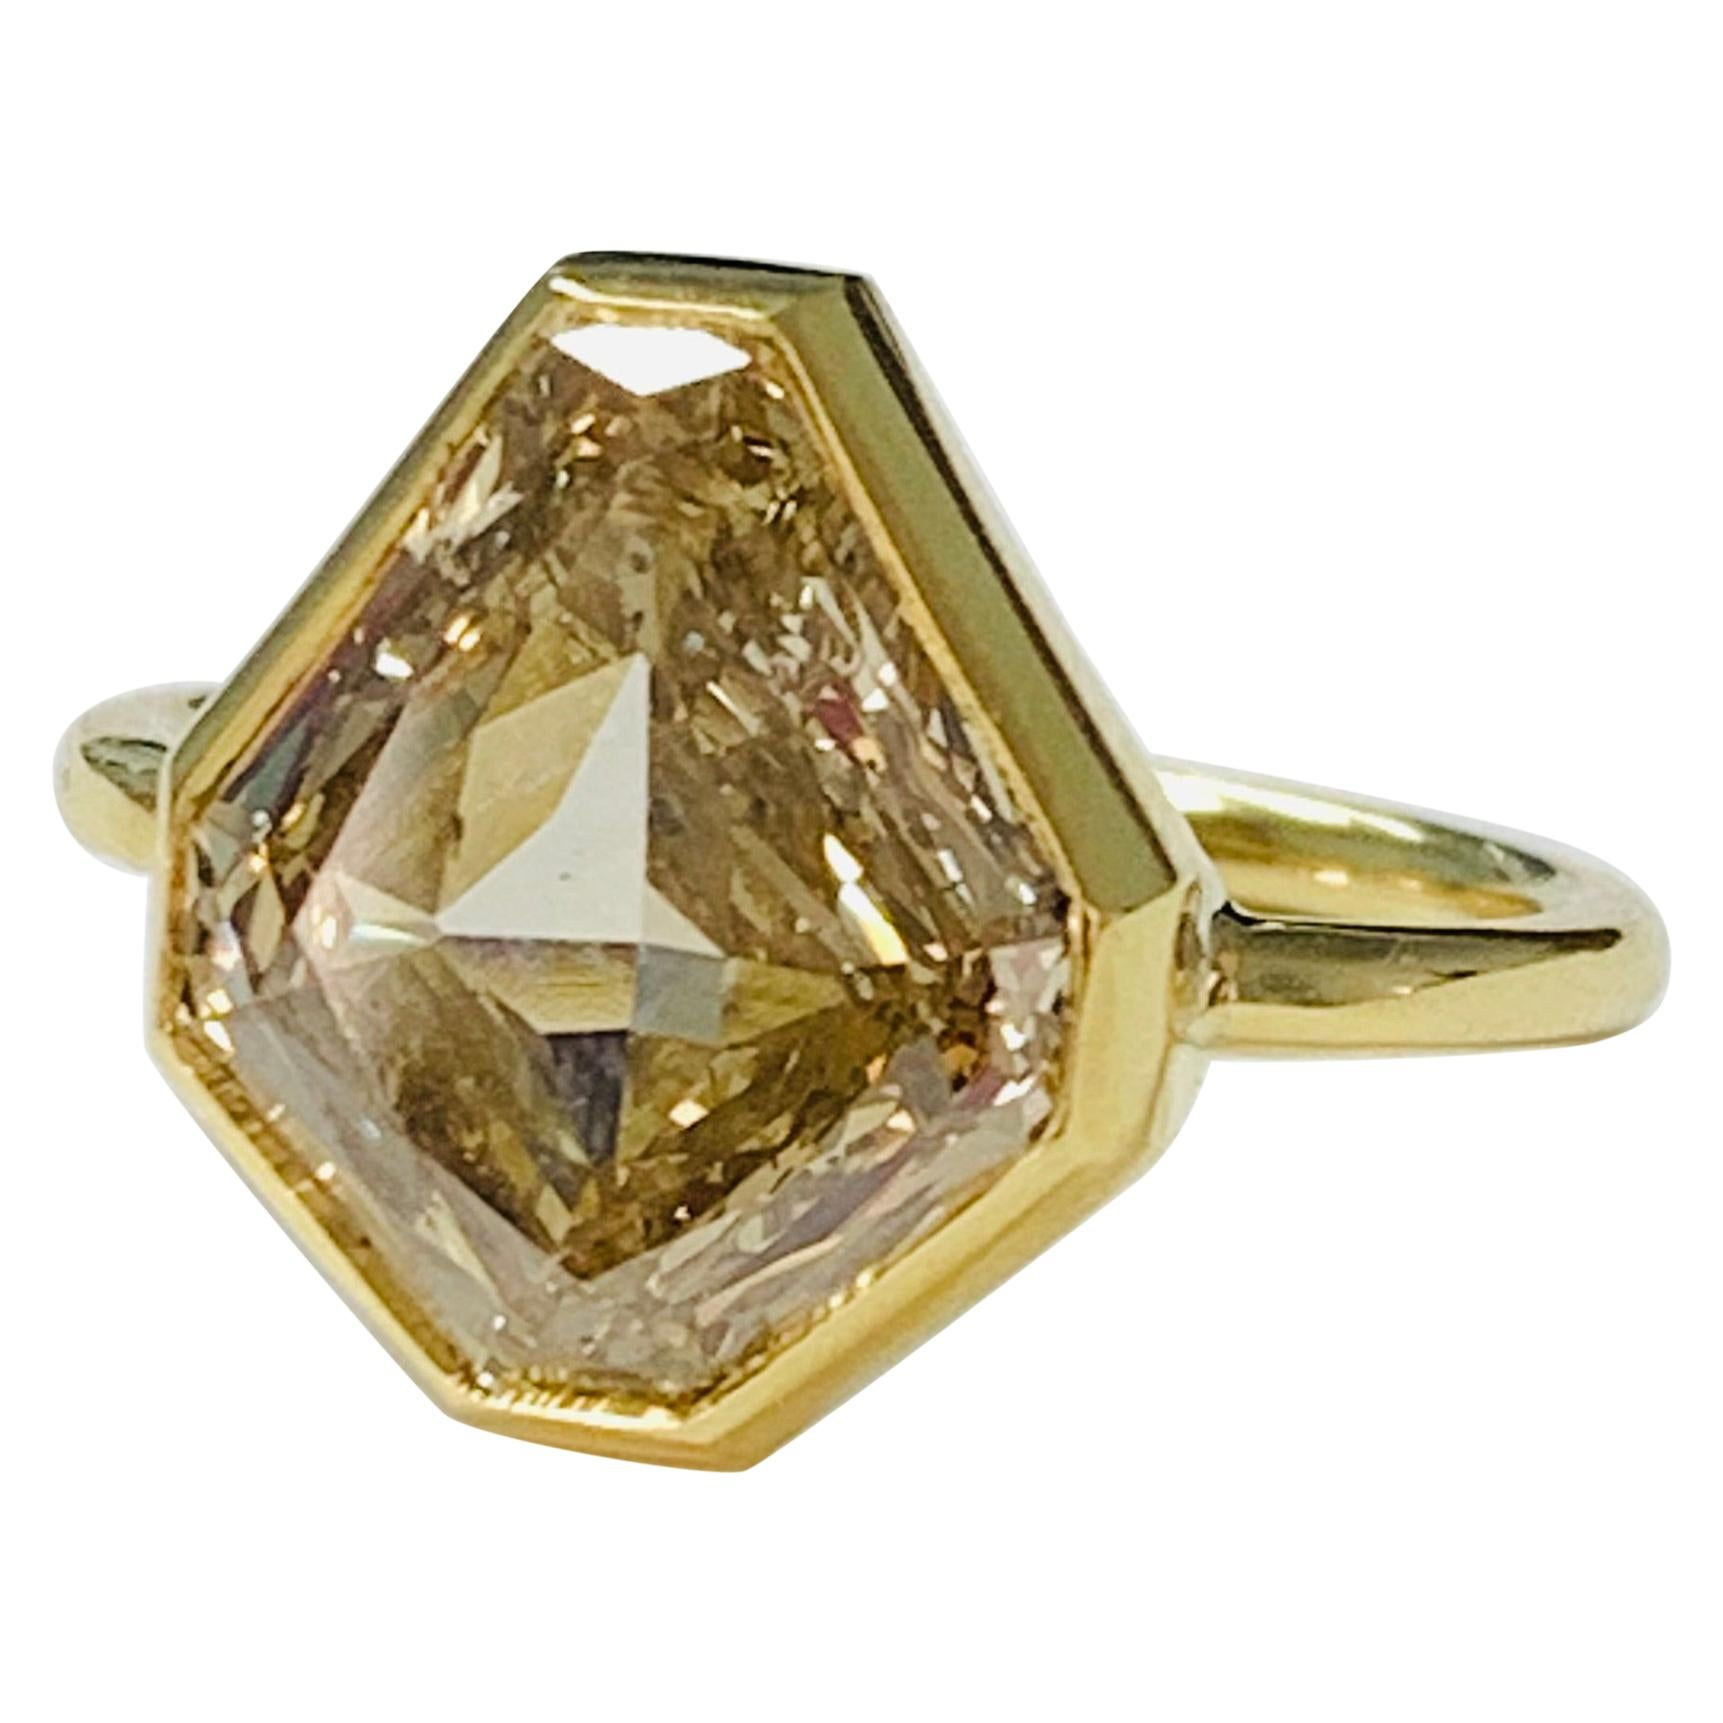 4.58 Carat Brown Yellow Shield Cut Diamond Engagement Ring in 18K White Gold